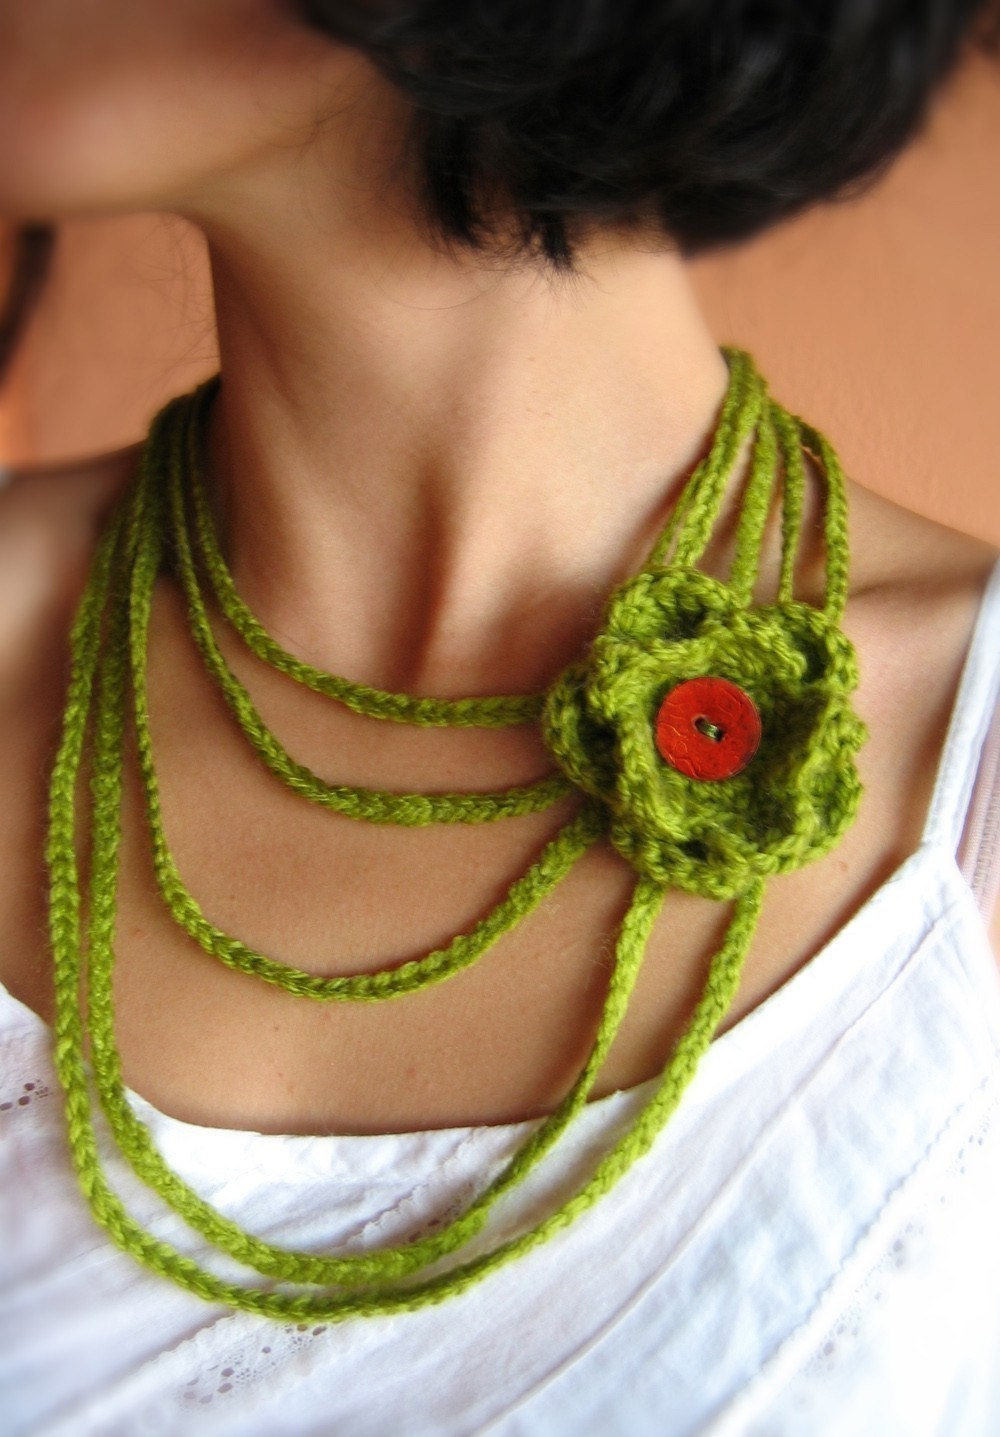 Gentle Crochet Necklace with Flower in Light Green